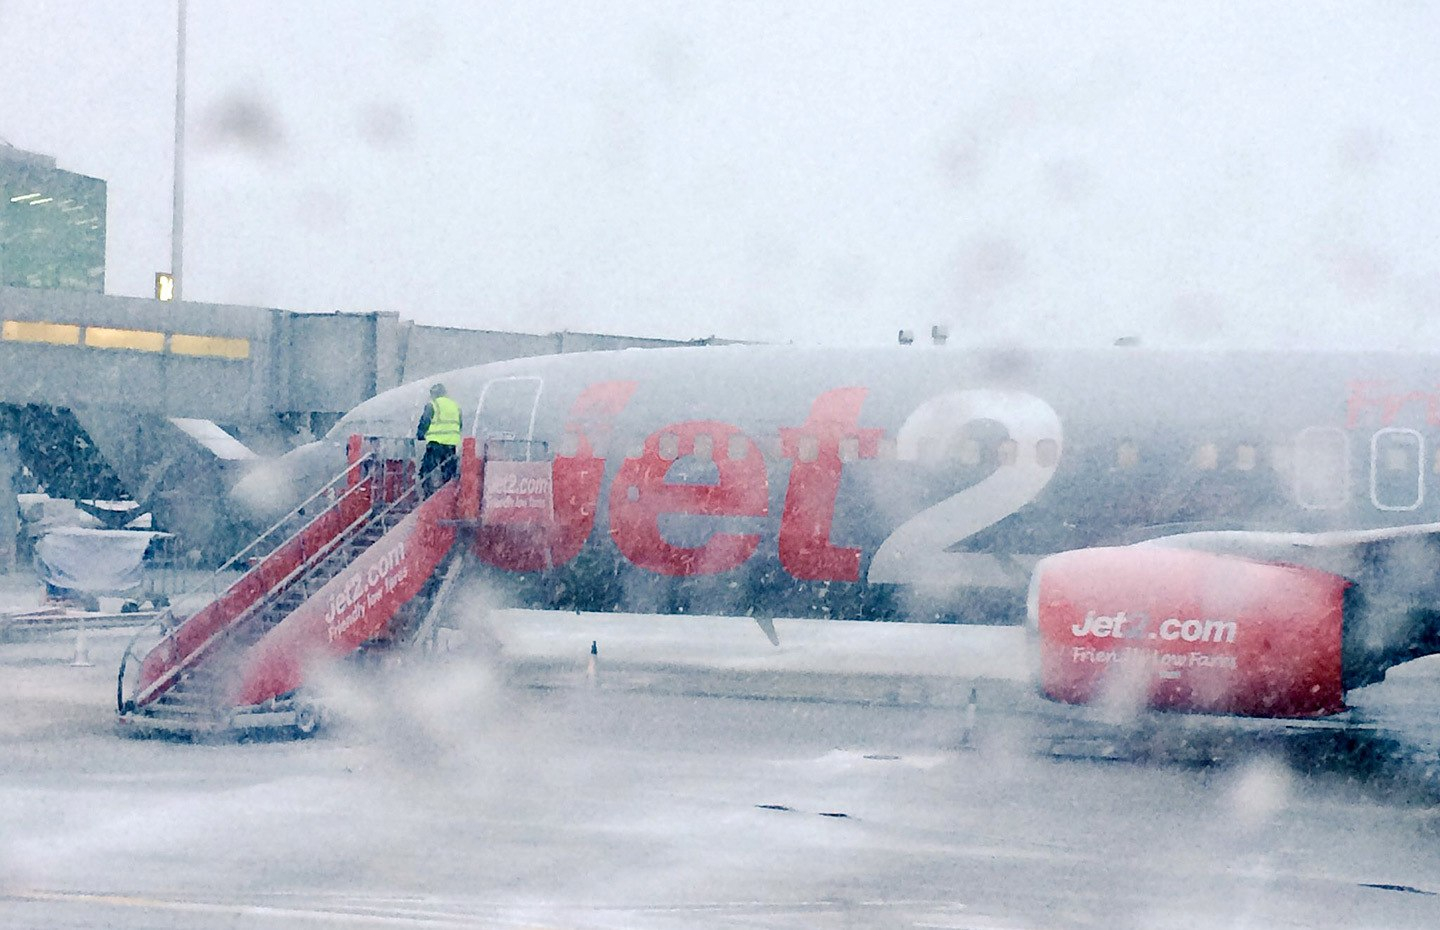 Jet2 plane on the runway in the snow